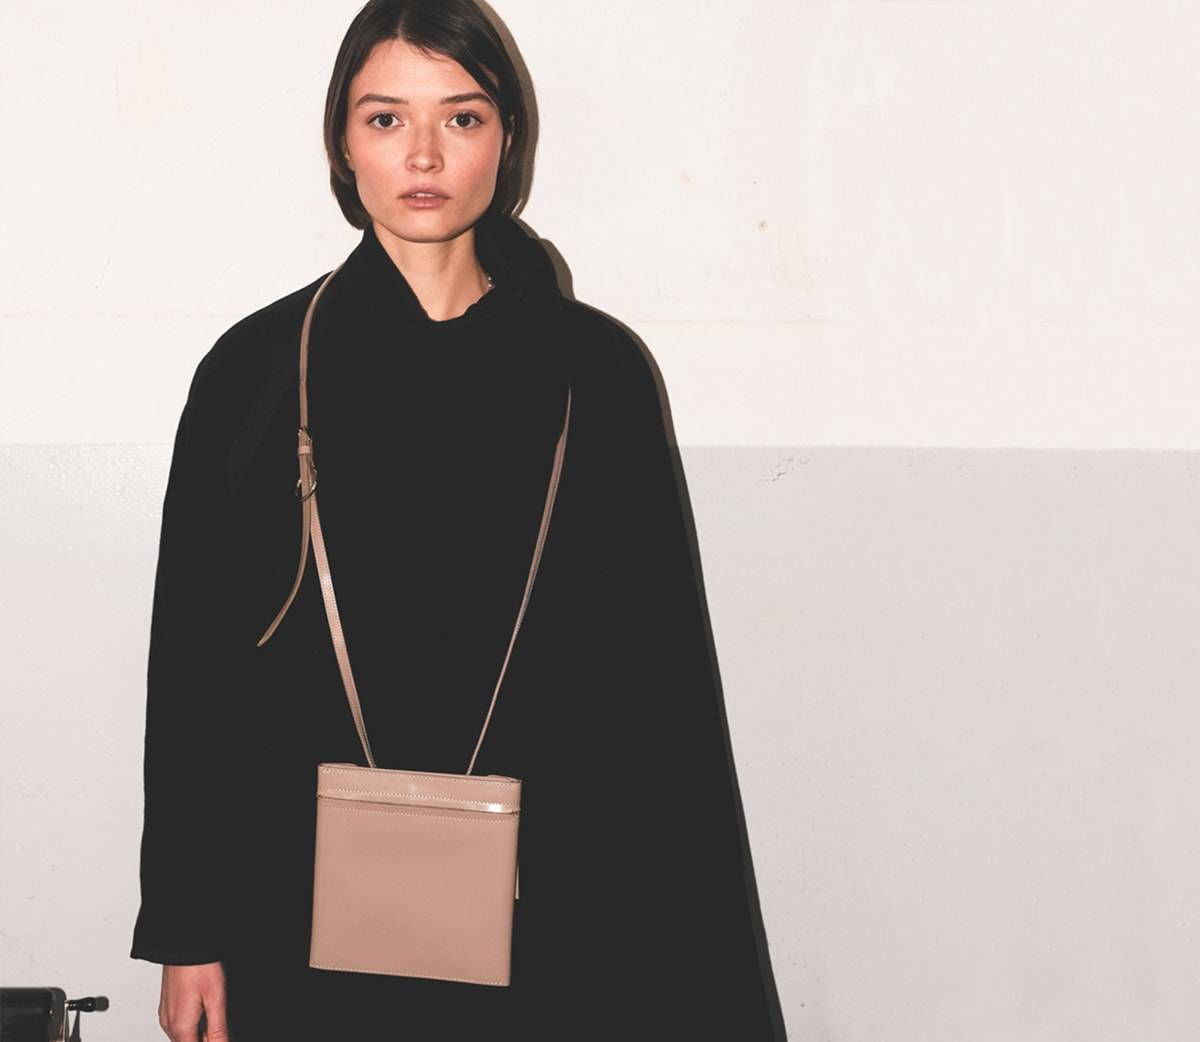 aaa / unbranded SS22: a new start